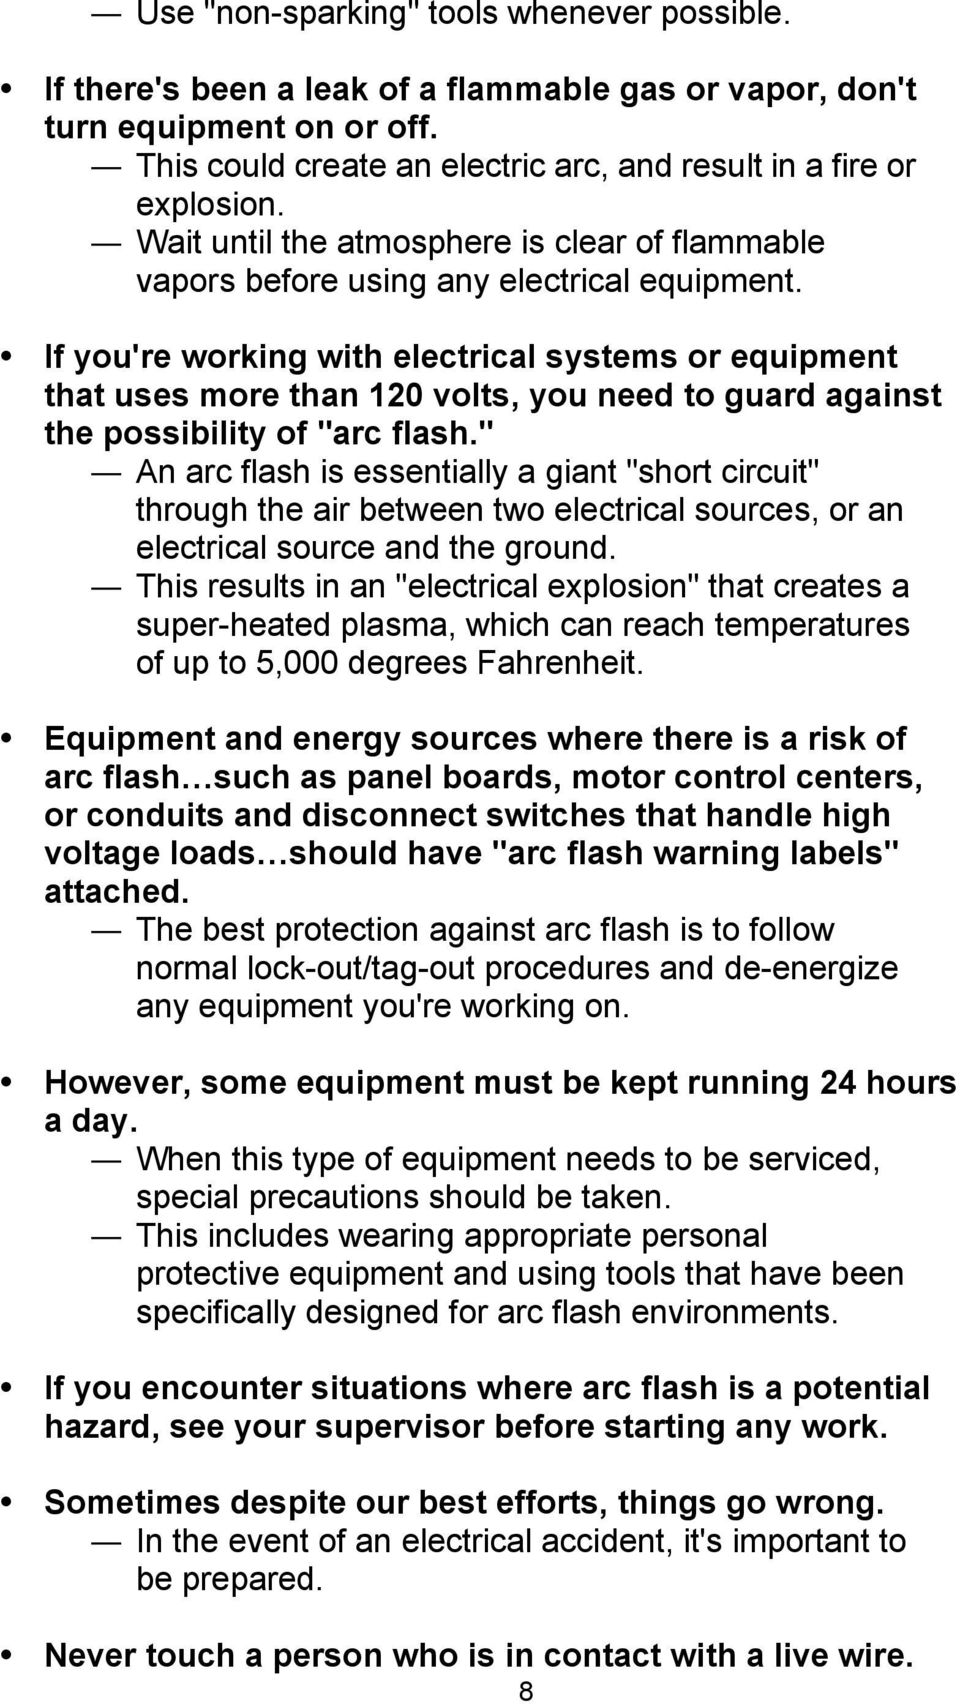 "If you're working with electrical systems or equipment that uses more than 120 volts, you need to guard against the possibility of ""arc flash."